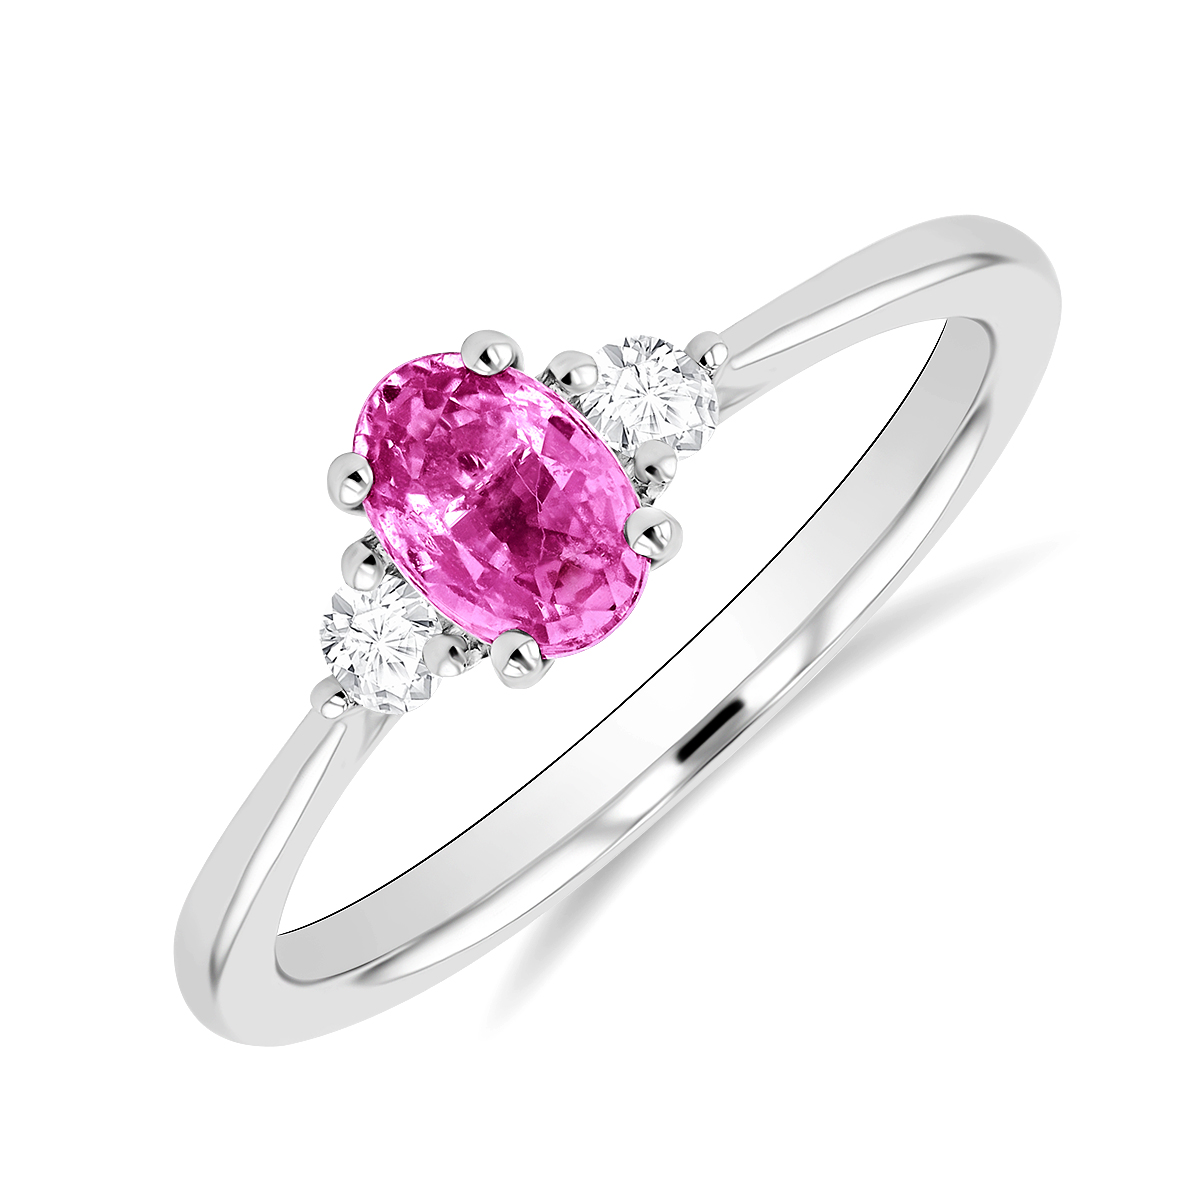 Rosa Mer Collection 0.66ct Pink Sapphire & Diamond Ring